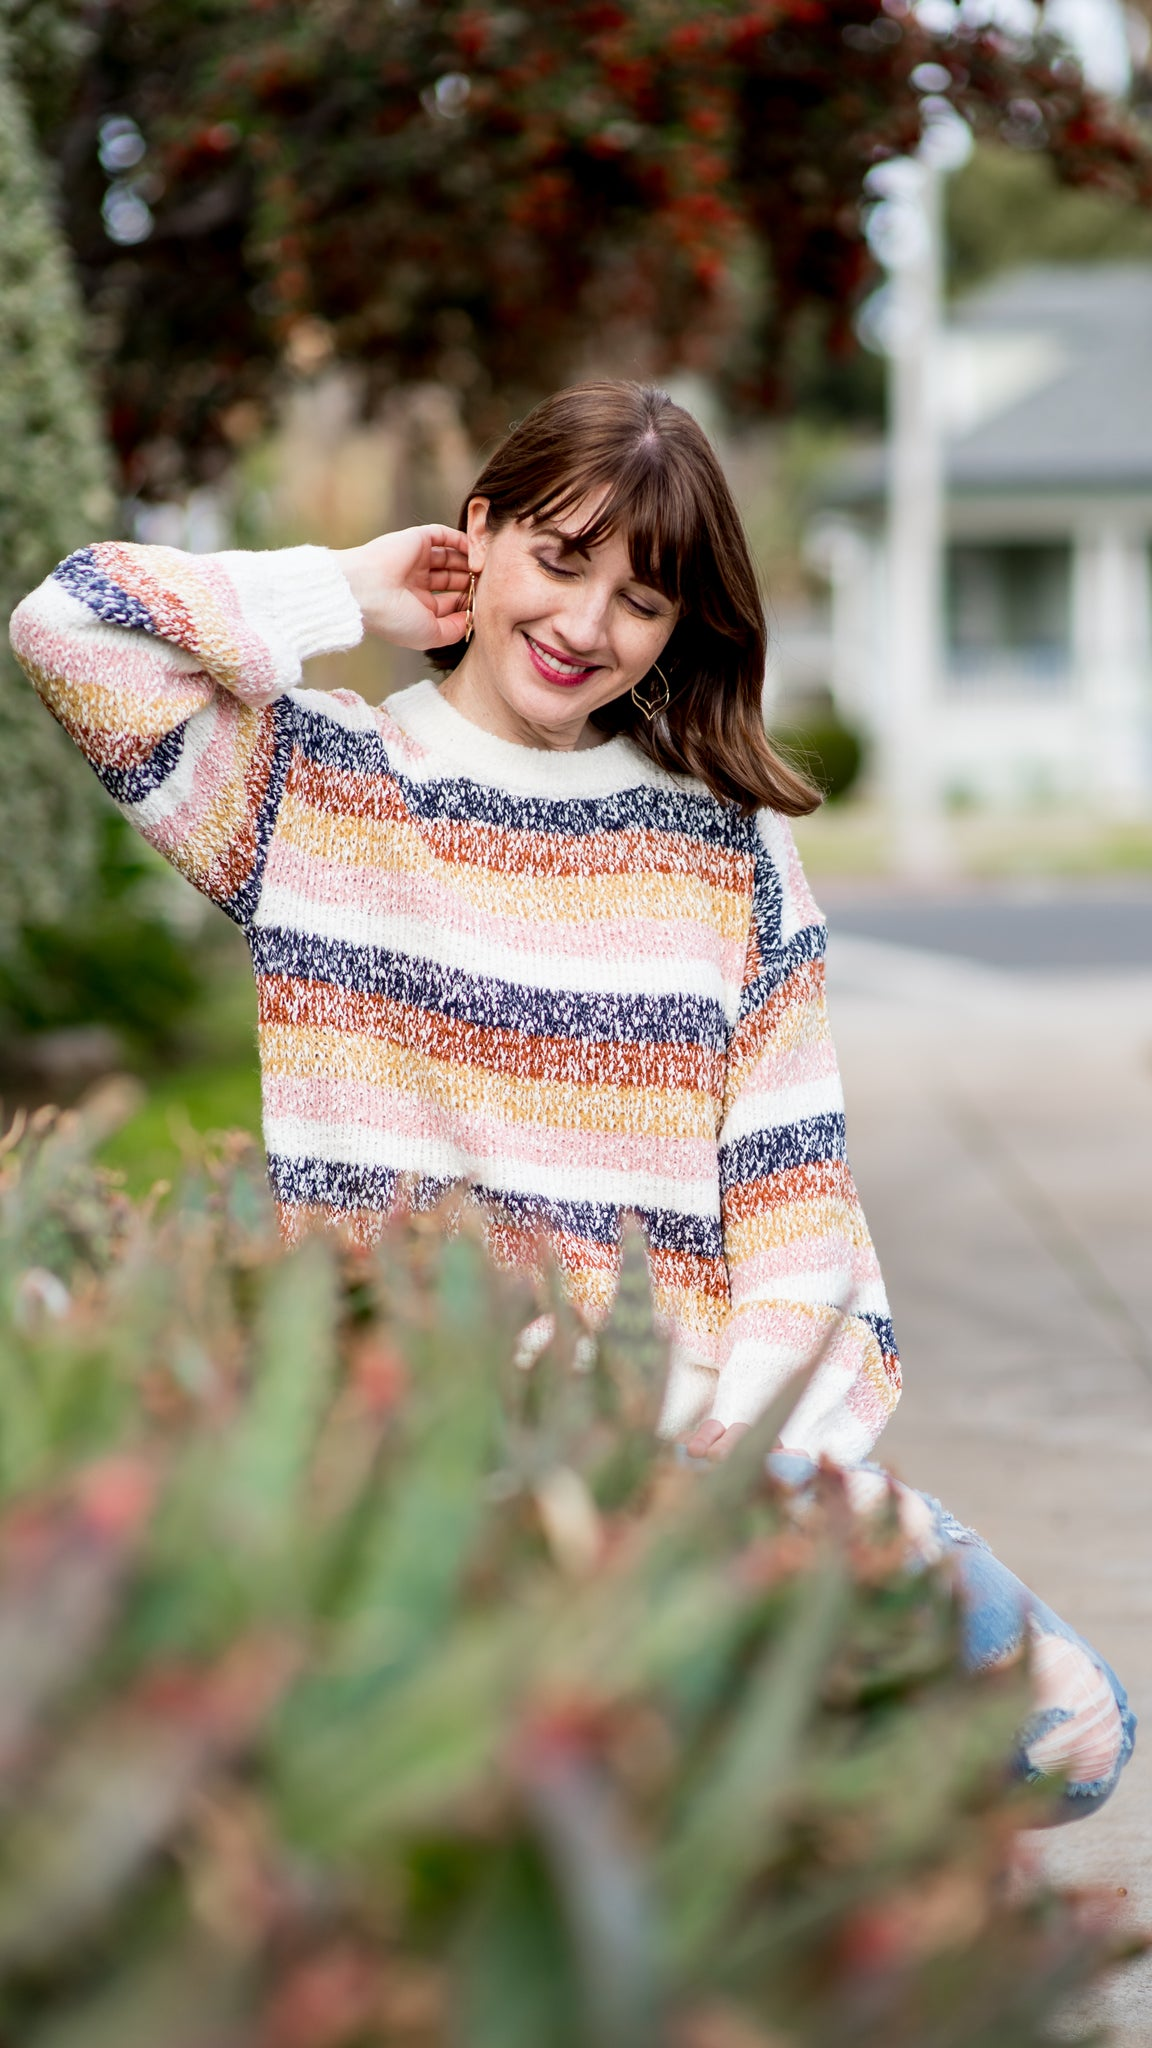 Cinnamon Sprinkled Multi Striped Sweater